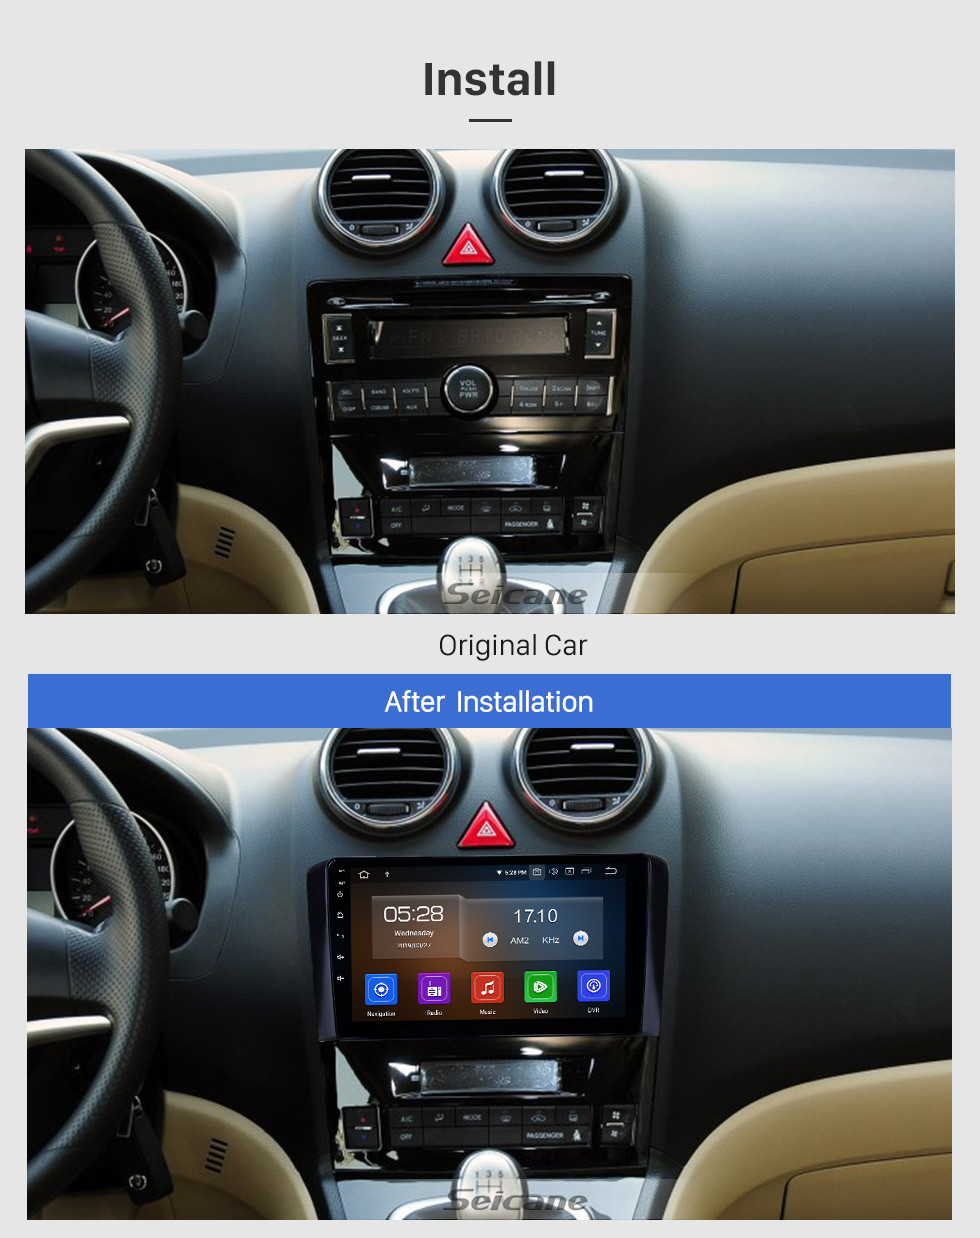 Seicane Android 9.0 9 polegada GPS Rádio de Navegação para 2011-2016 Great Wall Haval H6 com HD Touchscreen Carplay Bluetooth WIFI AUX apoio TPMS TV Digital